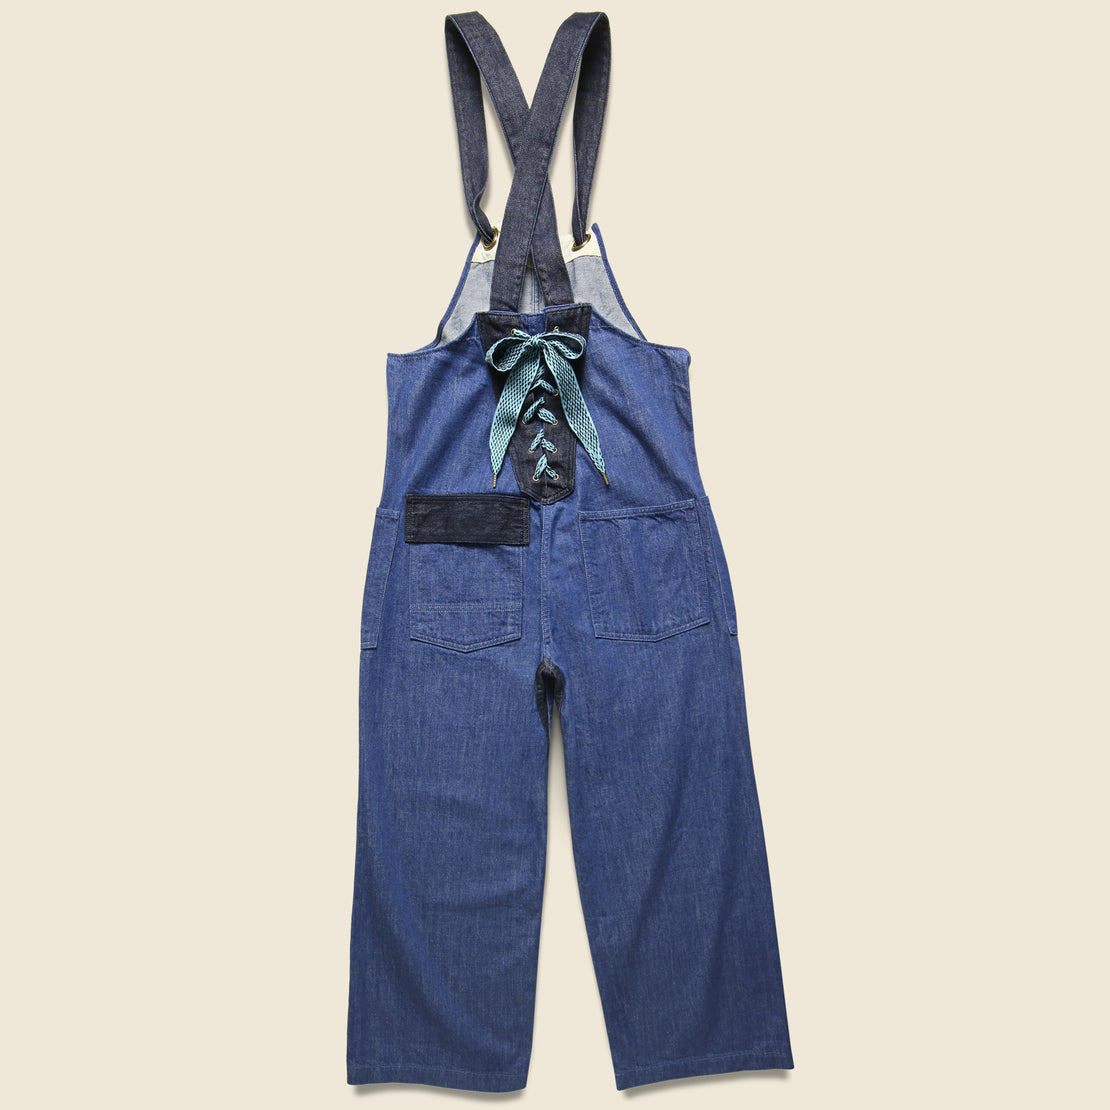 Lace-up Lobster Man Salopette Overall - 11.5oz Indigo